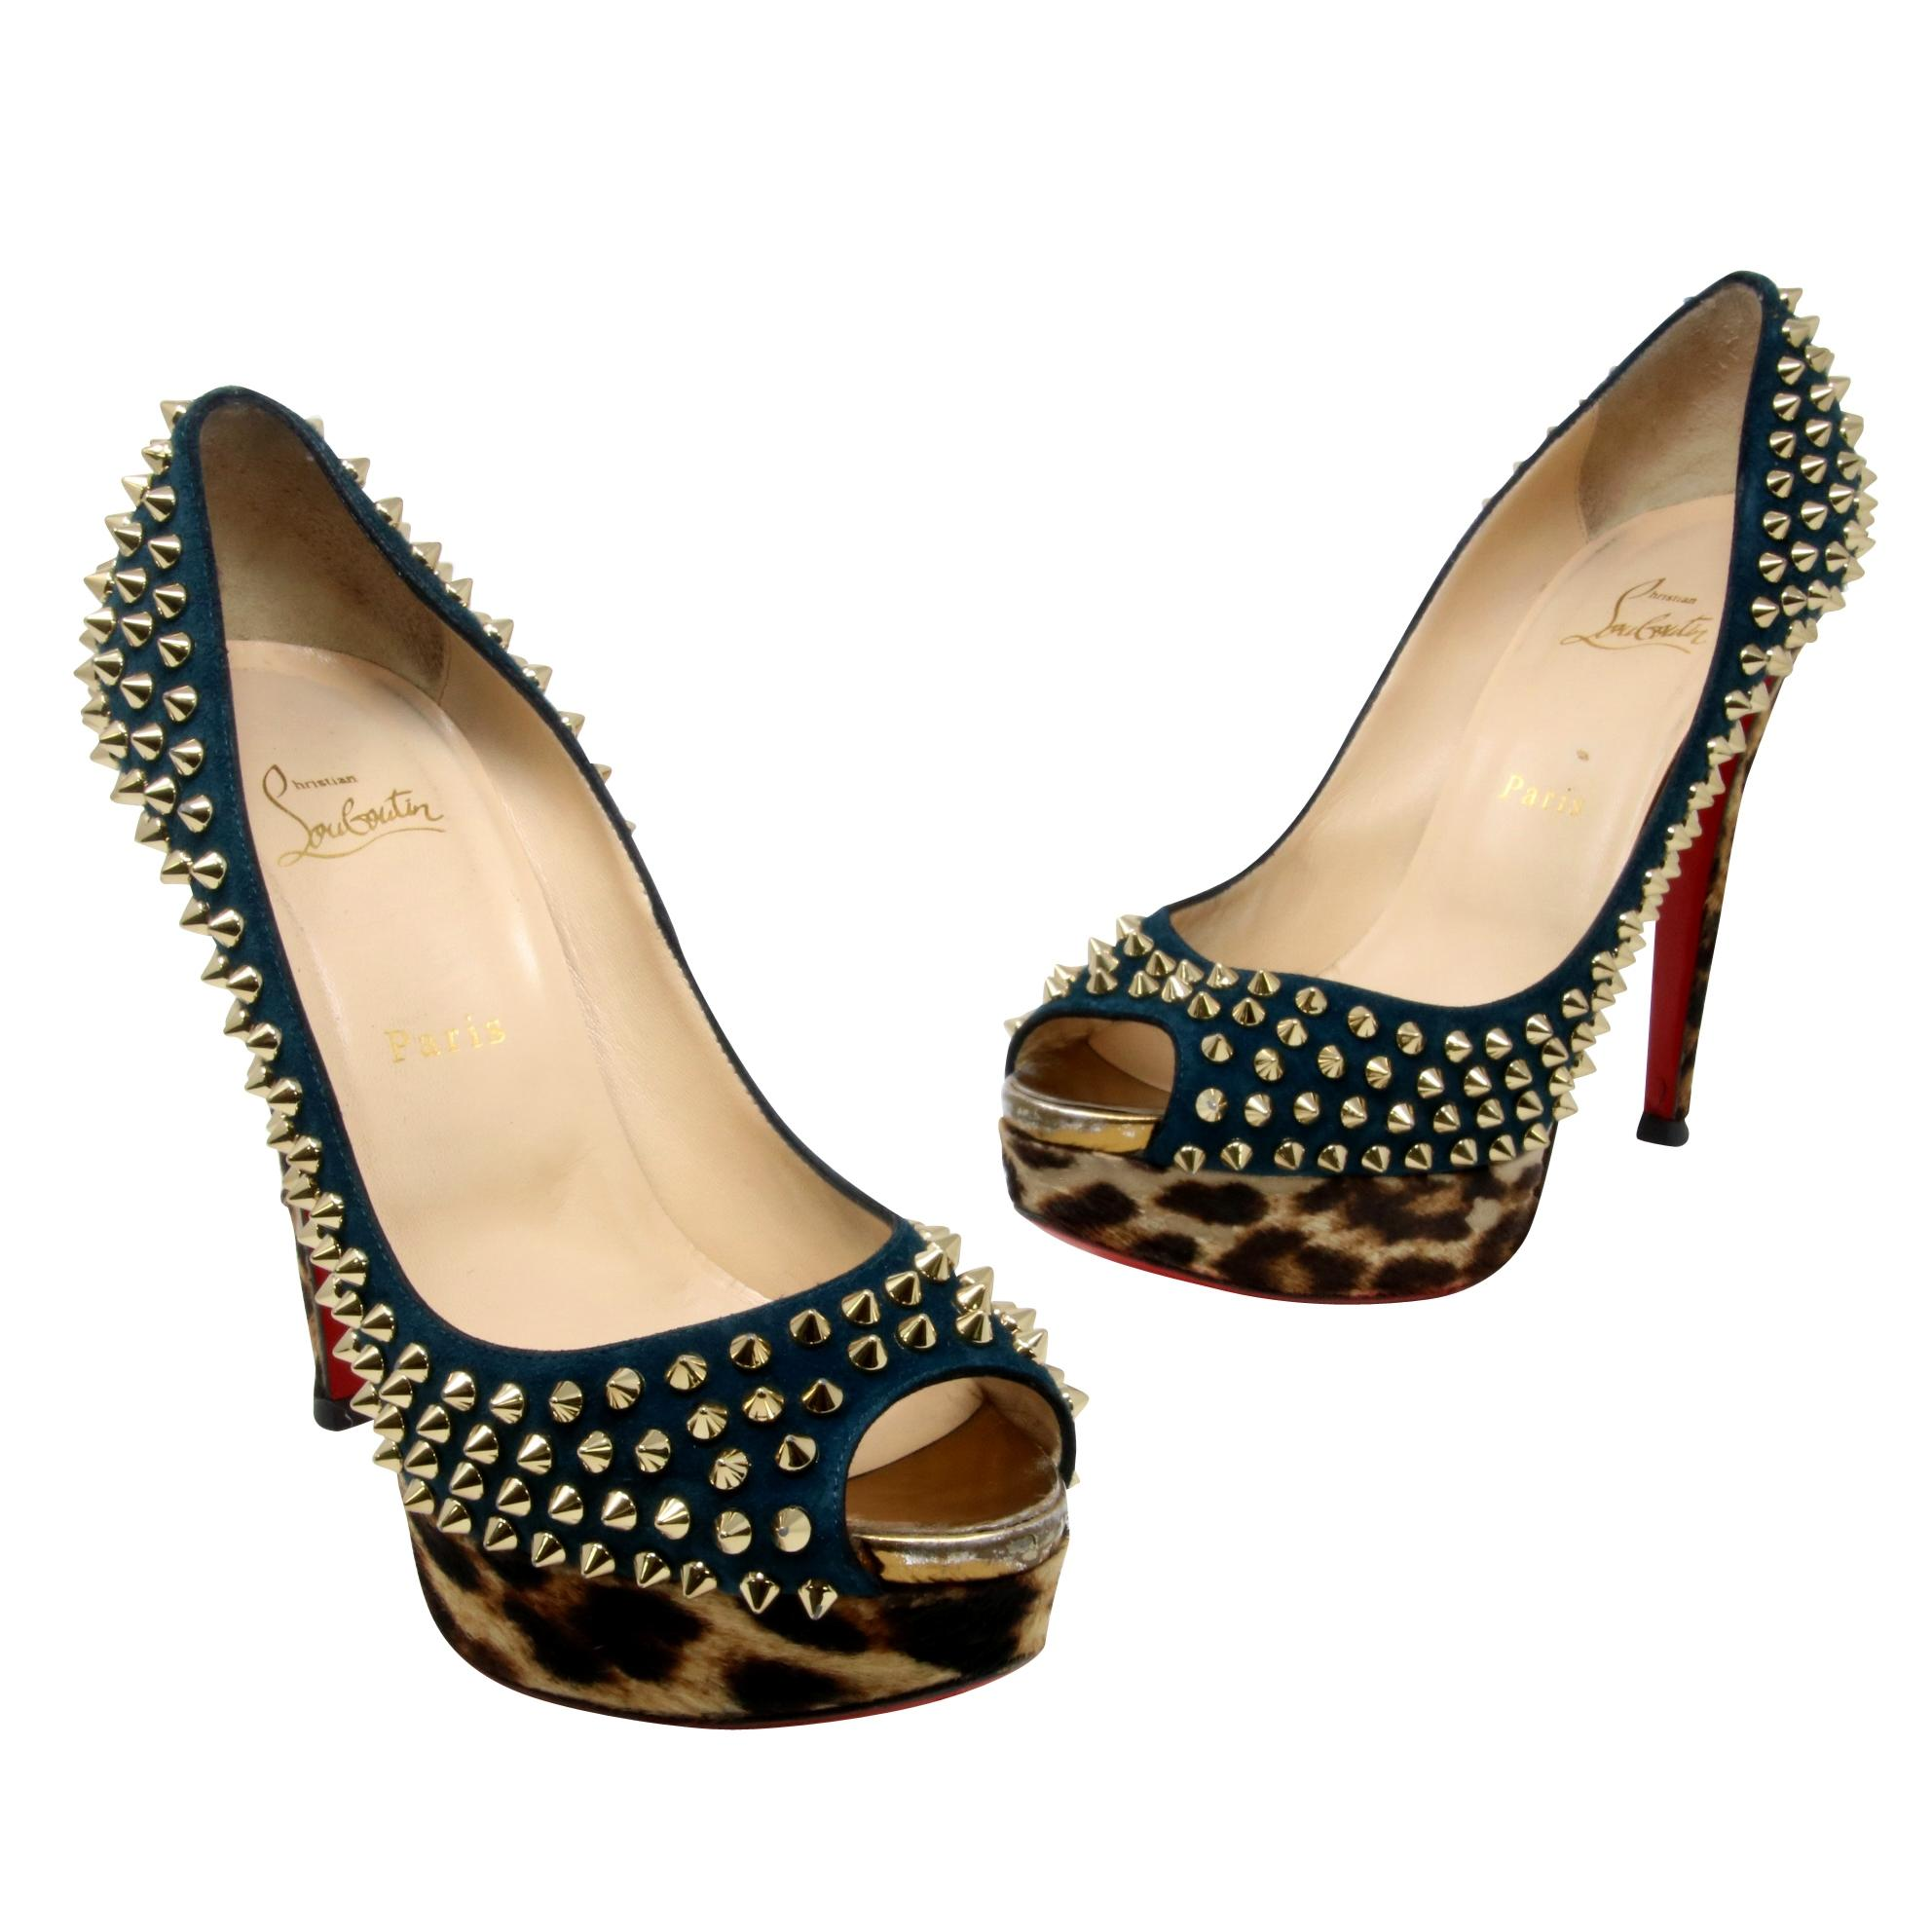 dfc965c6242 Christian Louboutin Teal Blue Suede Leopard Pony Pony Pony Hair Lady Peep  Spikes 150 39.5 Pumps Size US 9.5 Regular (M